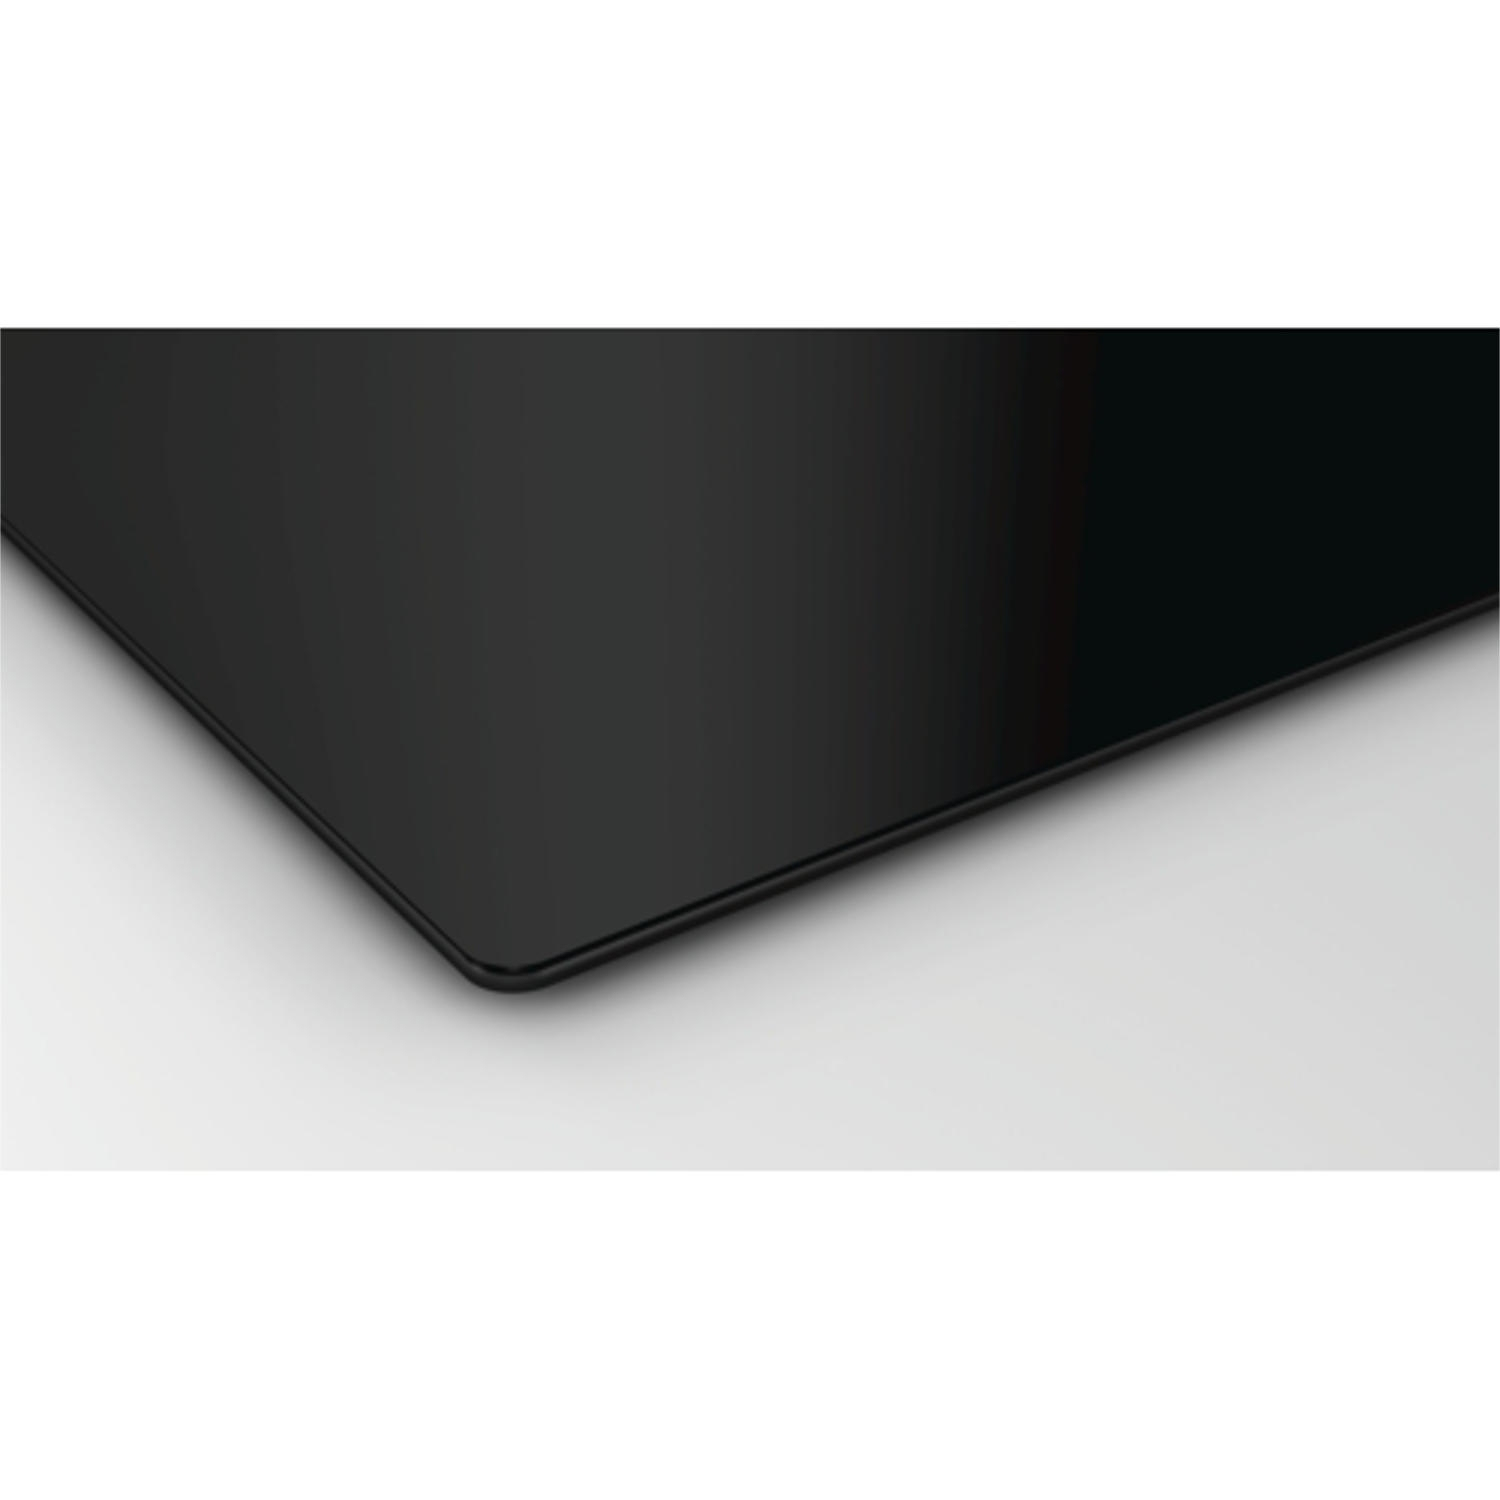 Bosch PUE611BF1B 60cm Induction Hob - Black - 2